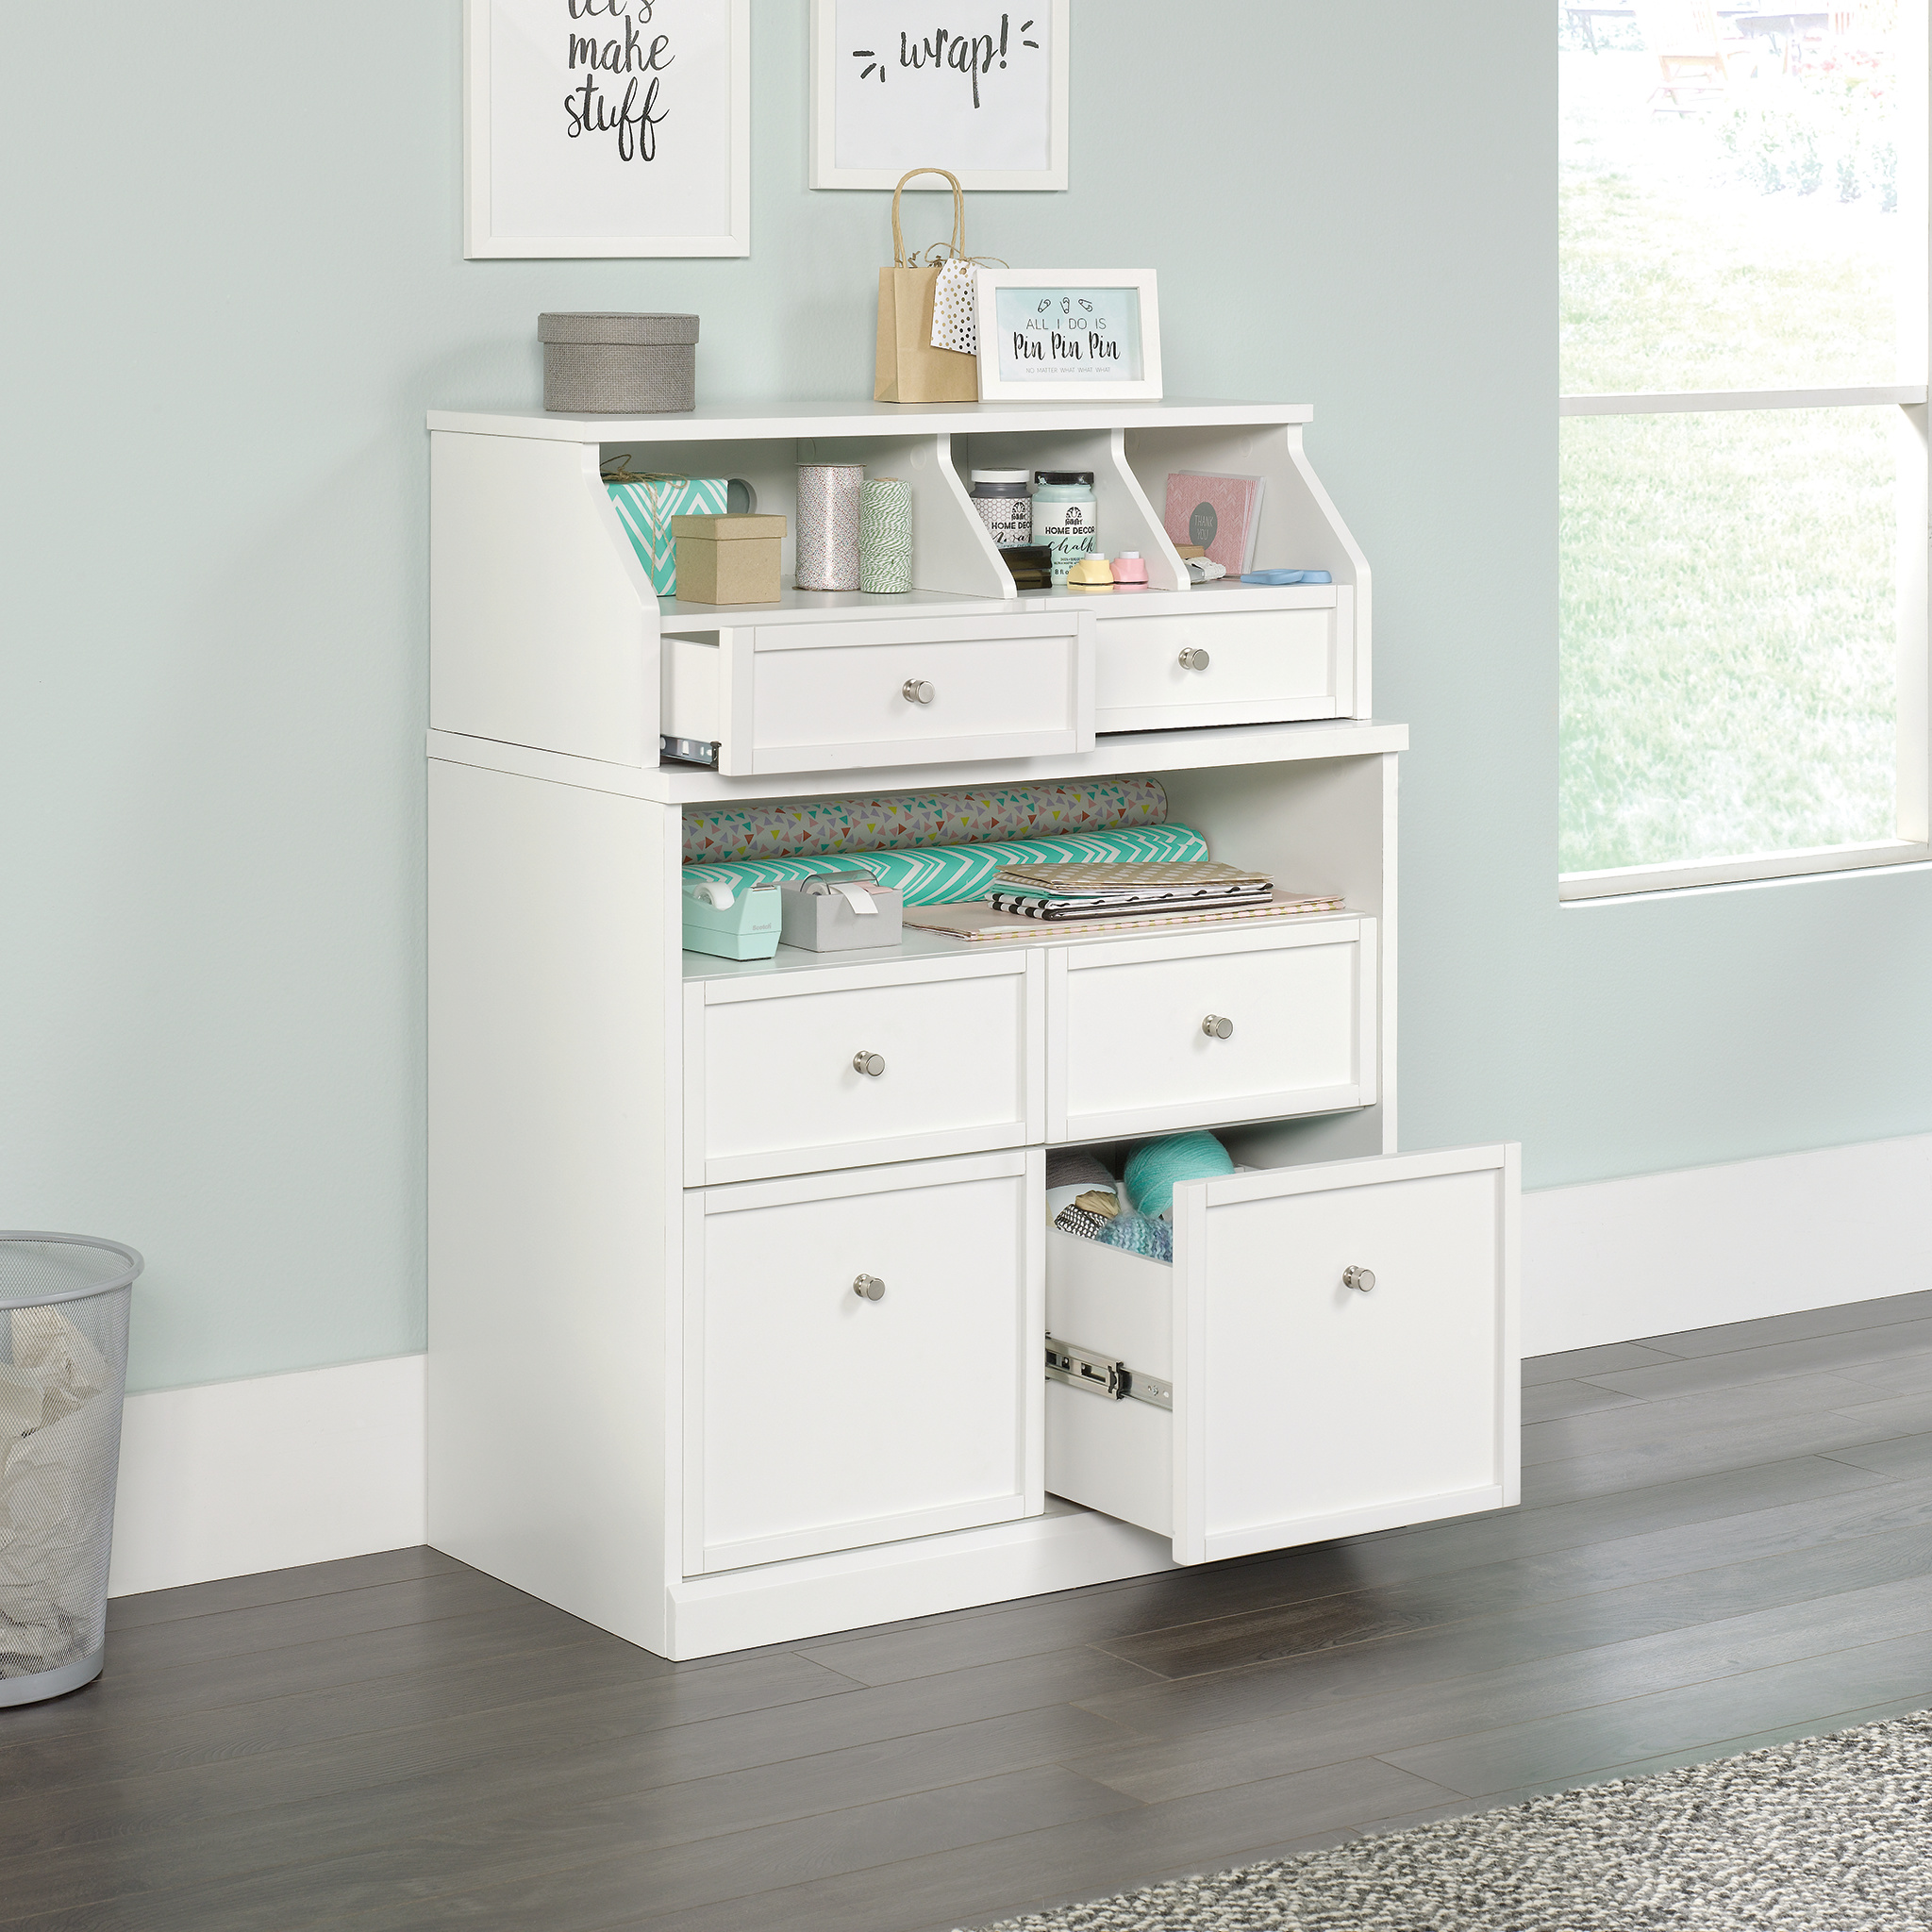 Better Homes Gardens Craftform Sewing And Craft Storage Cabinet With Drawers And Storage Hutch Walmart Com Walmart Com